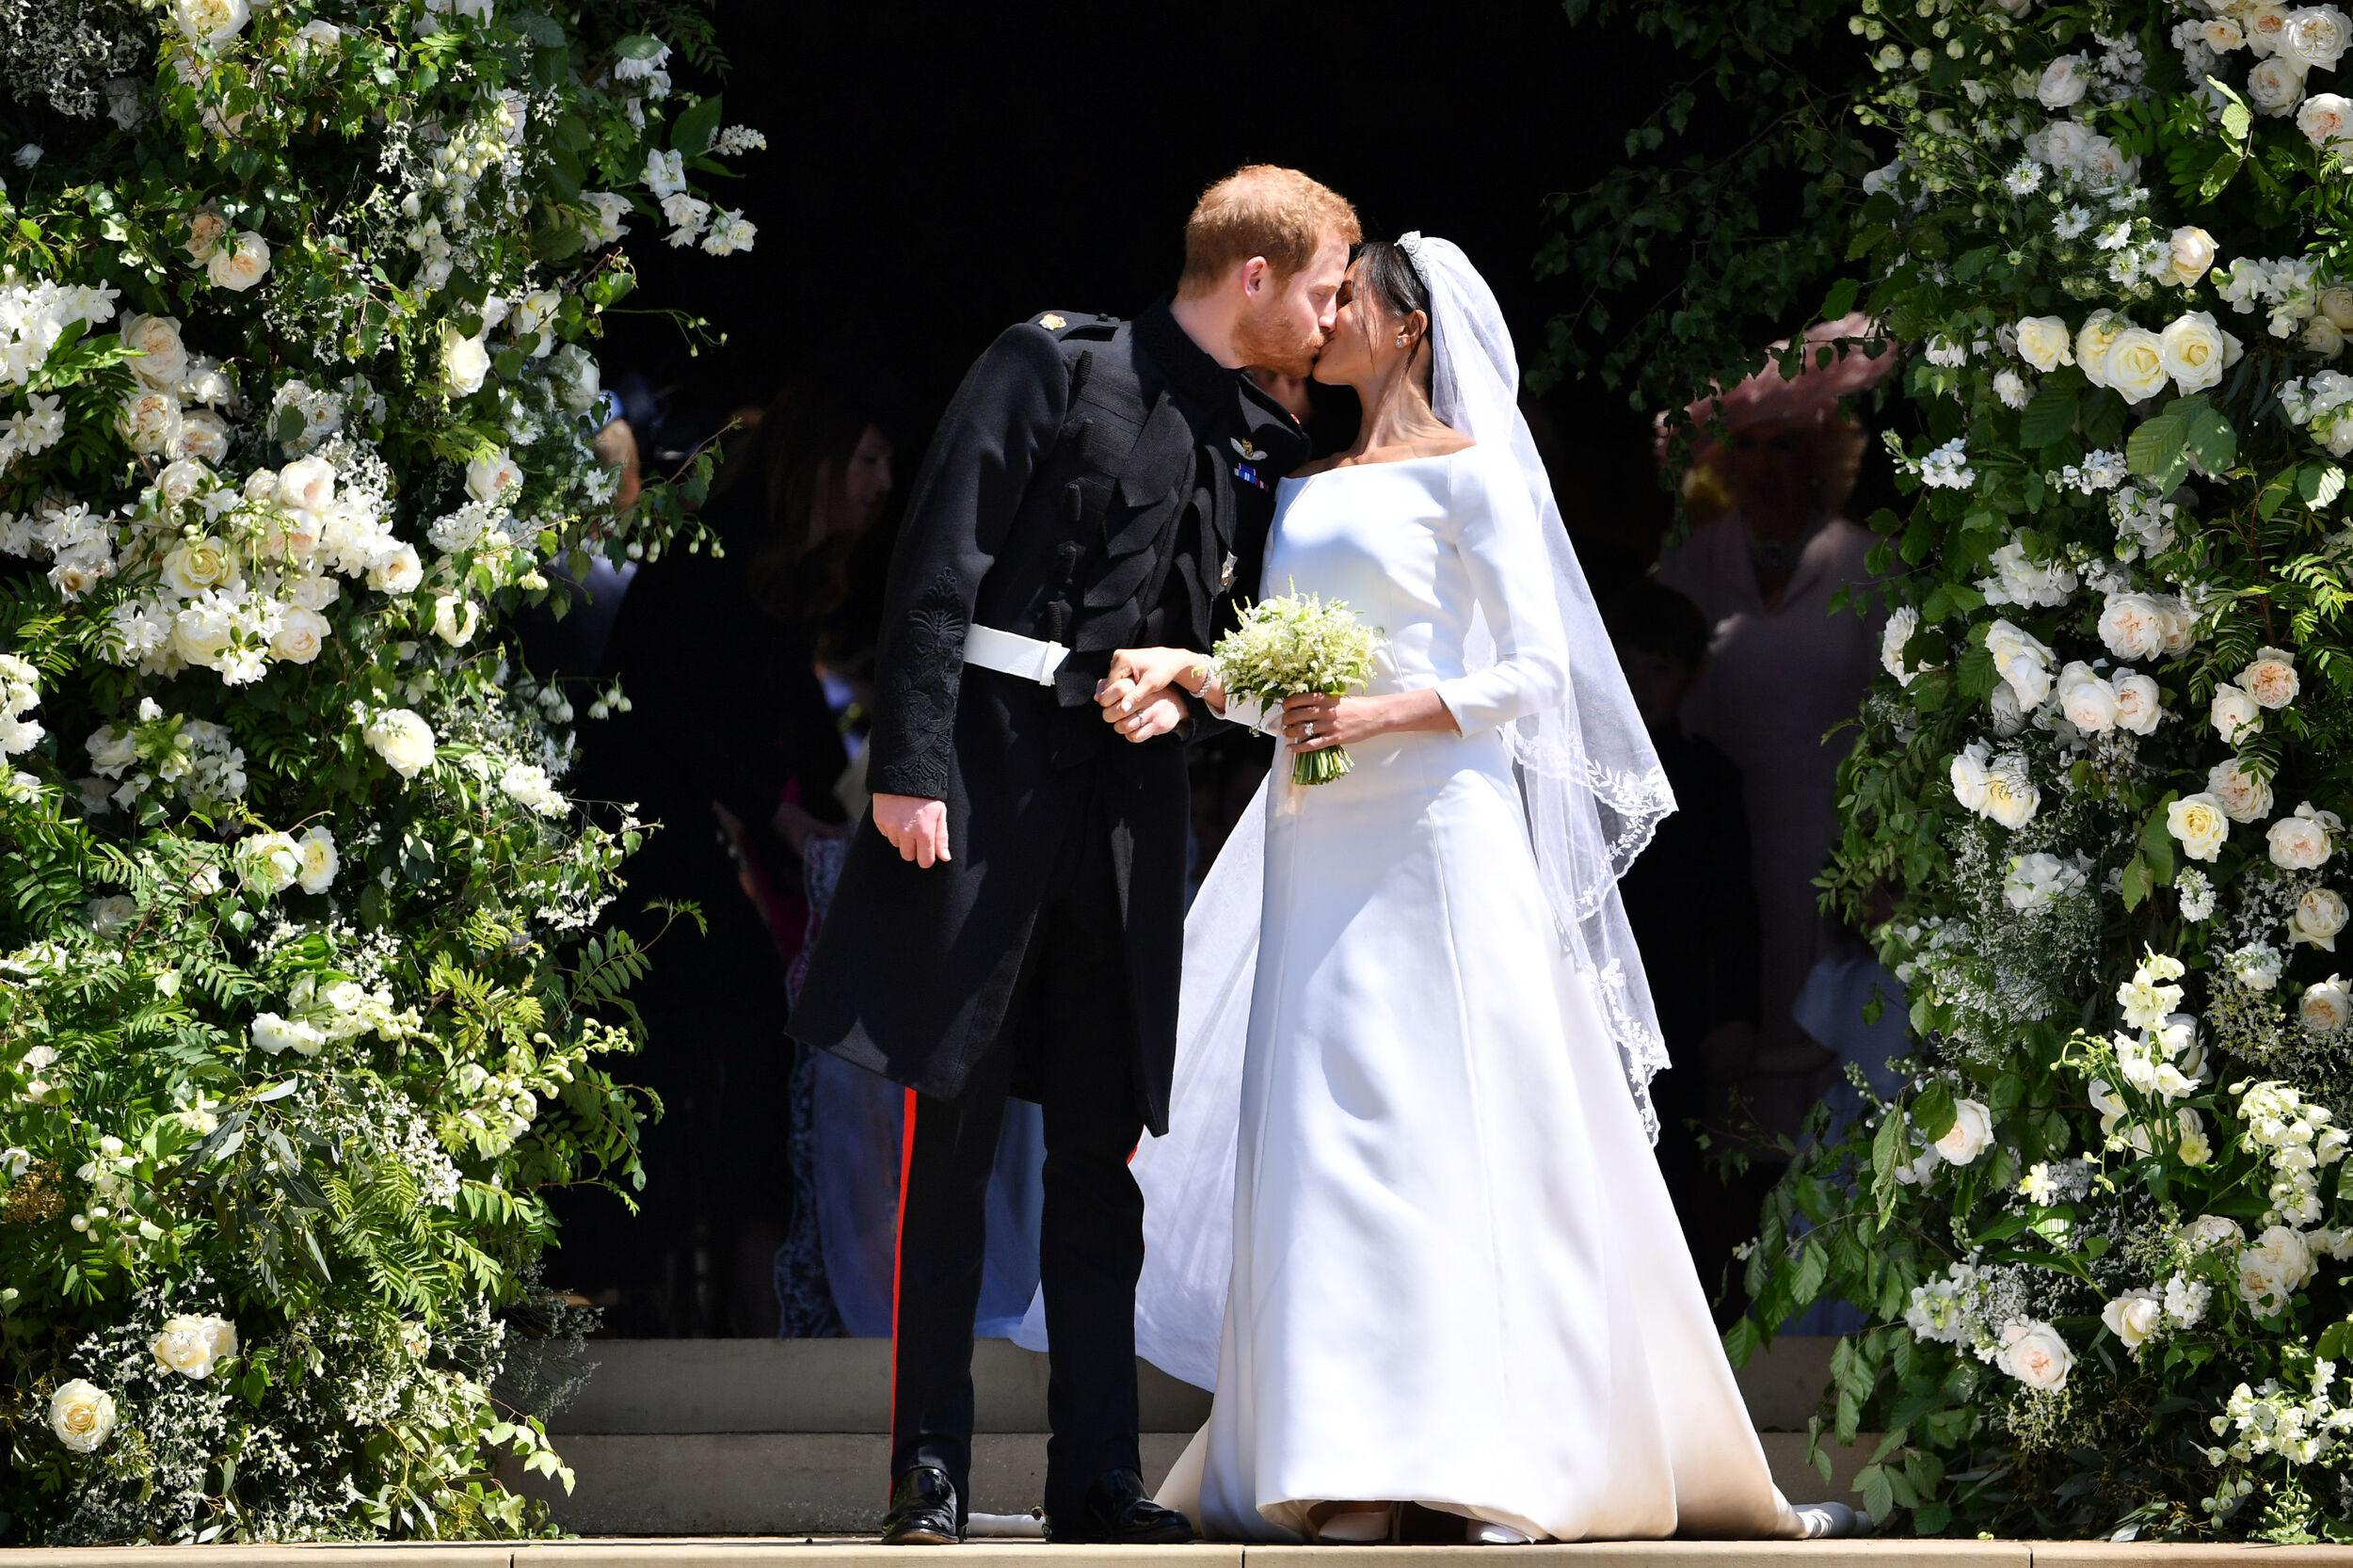 File photo dated 19/05/18 of Prince Harry and Meghan Markle as they leave at St. George's Chapel in Windsor Castle after their wedding ceremony. Princess Eugenie will be the fifth of the Queen's eight grandchildren to wed.